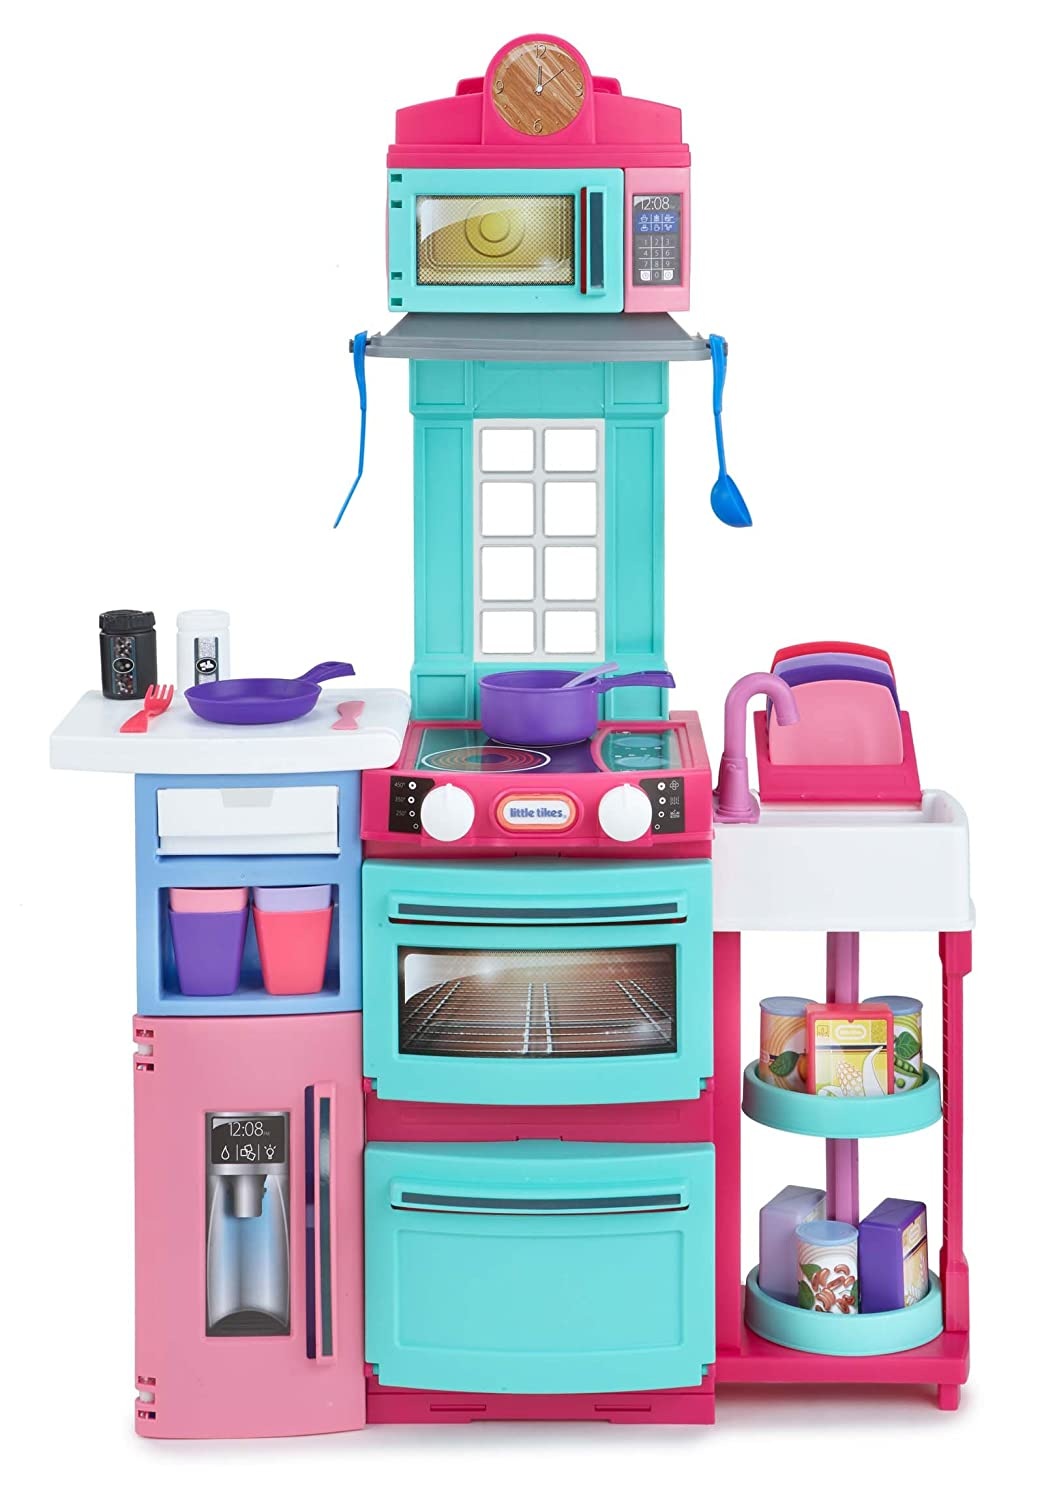 Amazon.com: Little Tikes Cook \'n Store Kitchen Playset - Pink: Toys ...